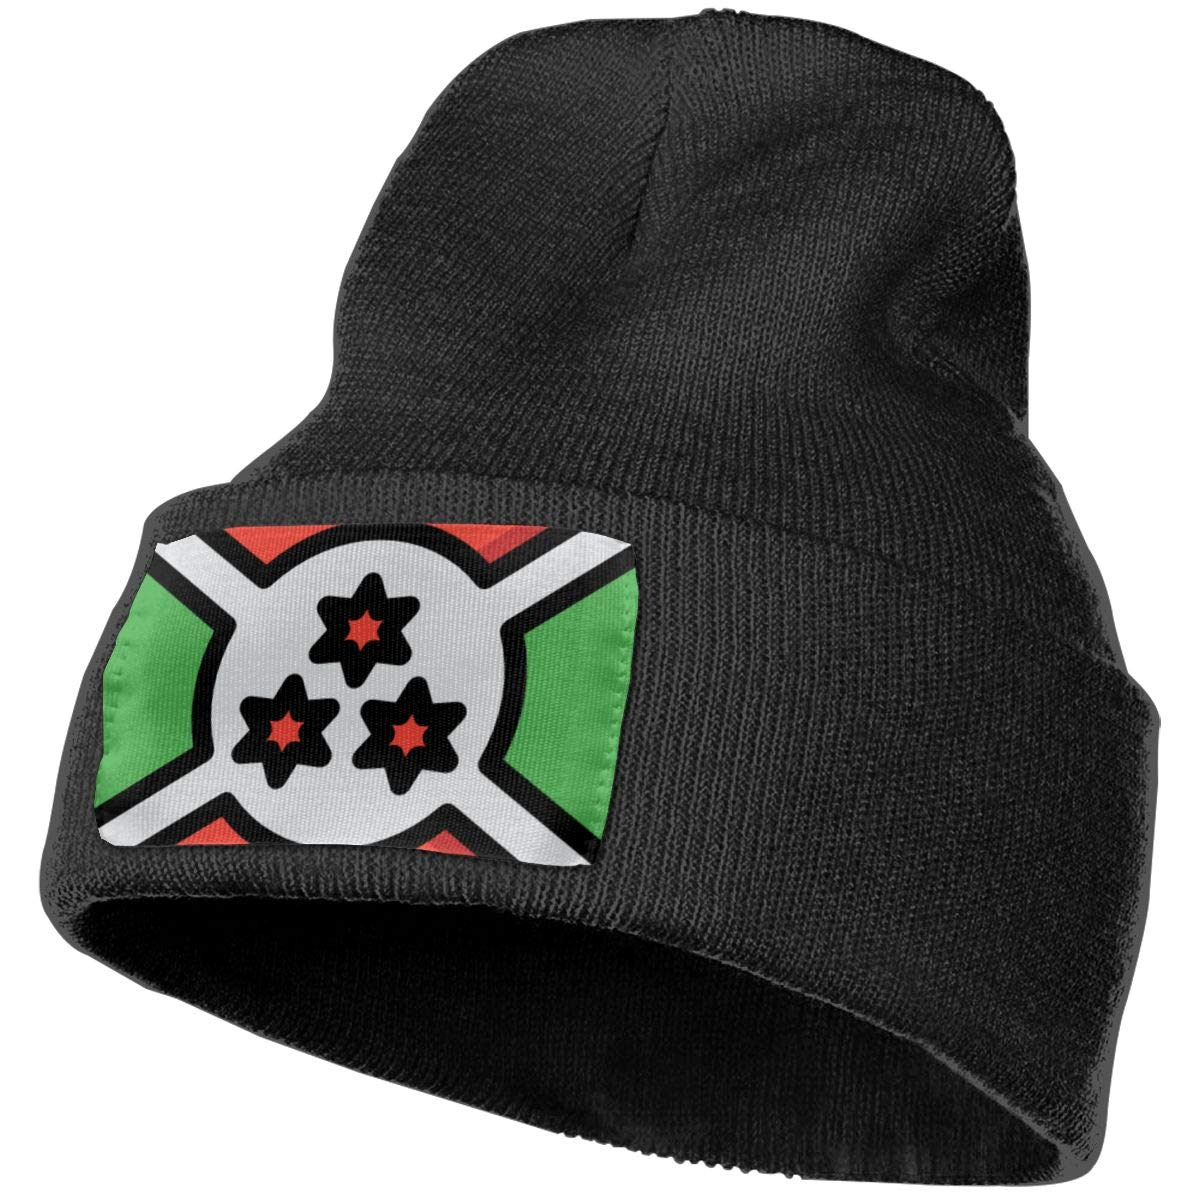 Eye Of The Angel Burundi Black Beanie Hat for Men and Women Winter Warm Hats Knit Slouchy Thick Skull Cap